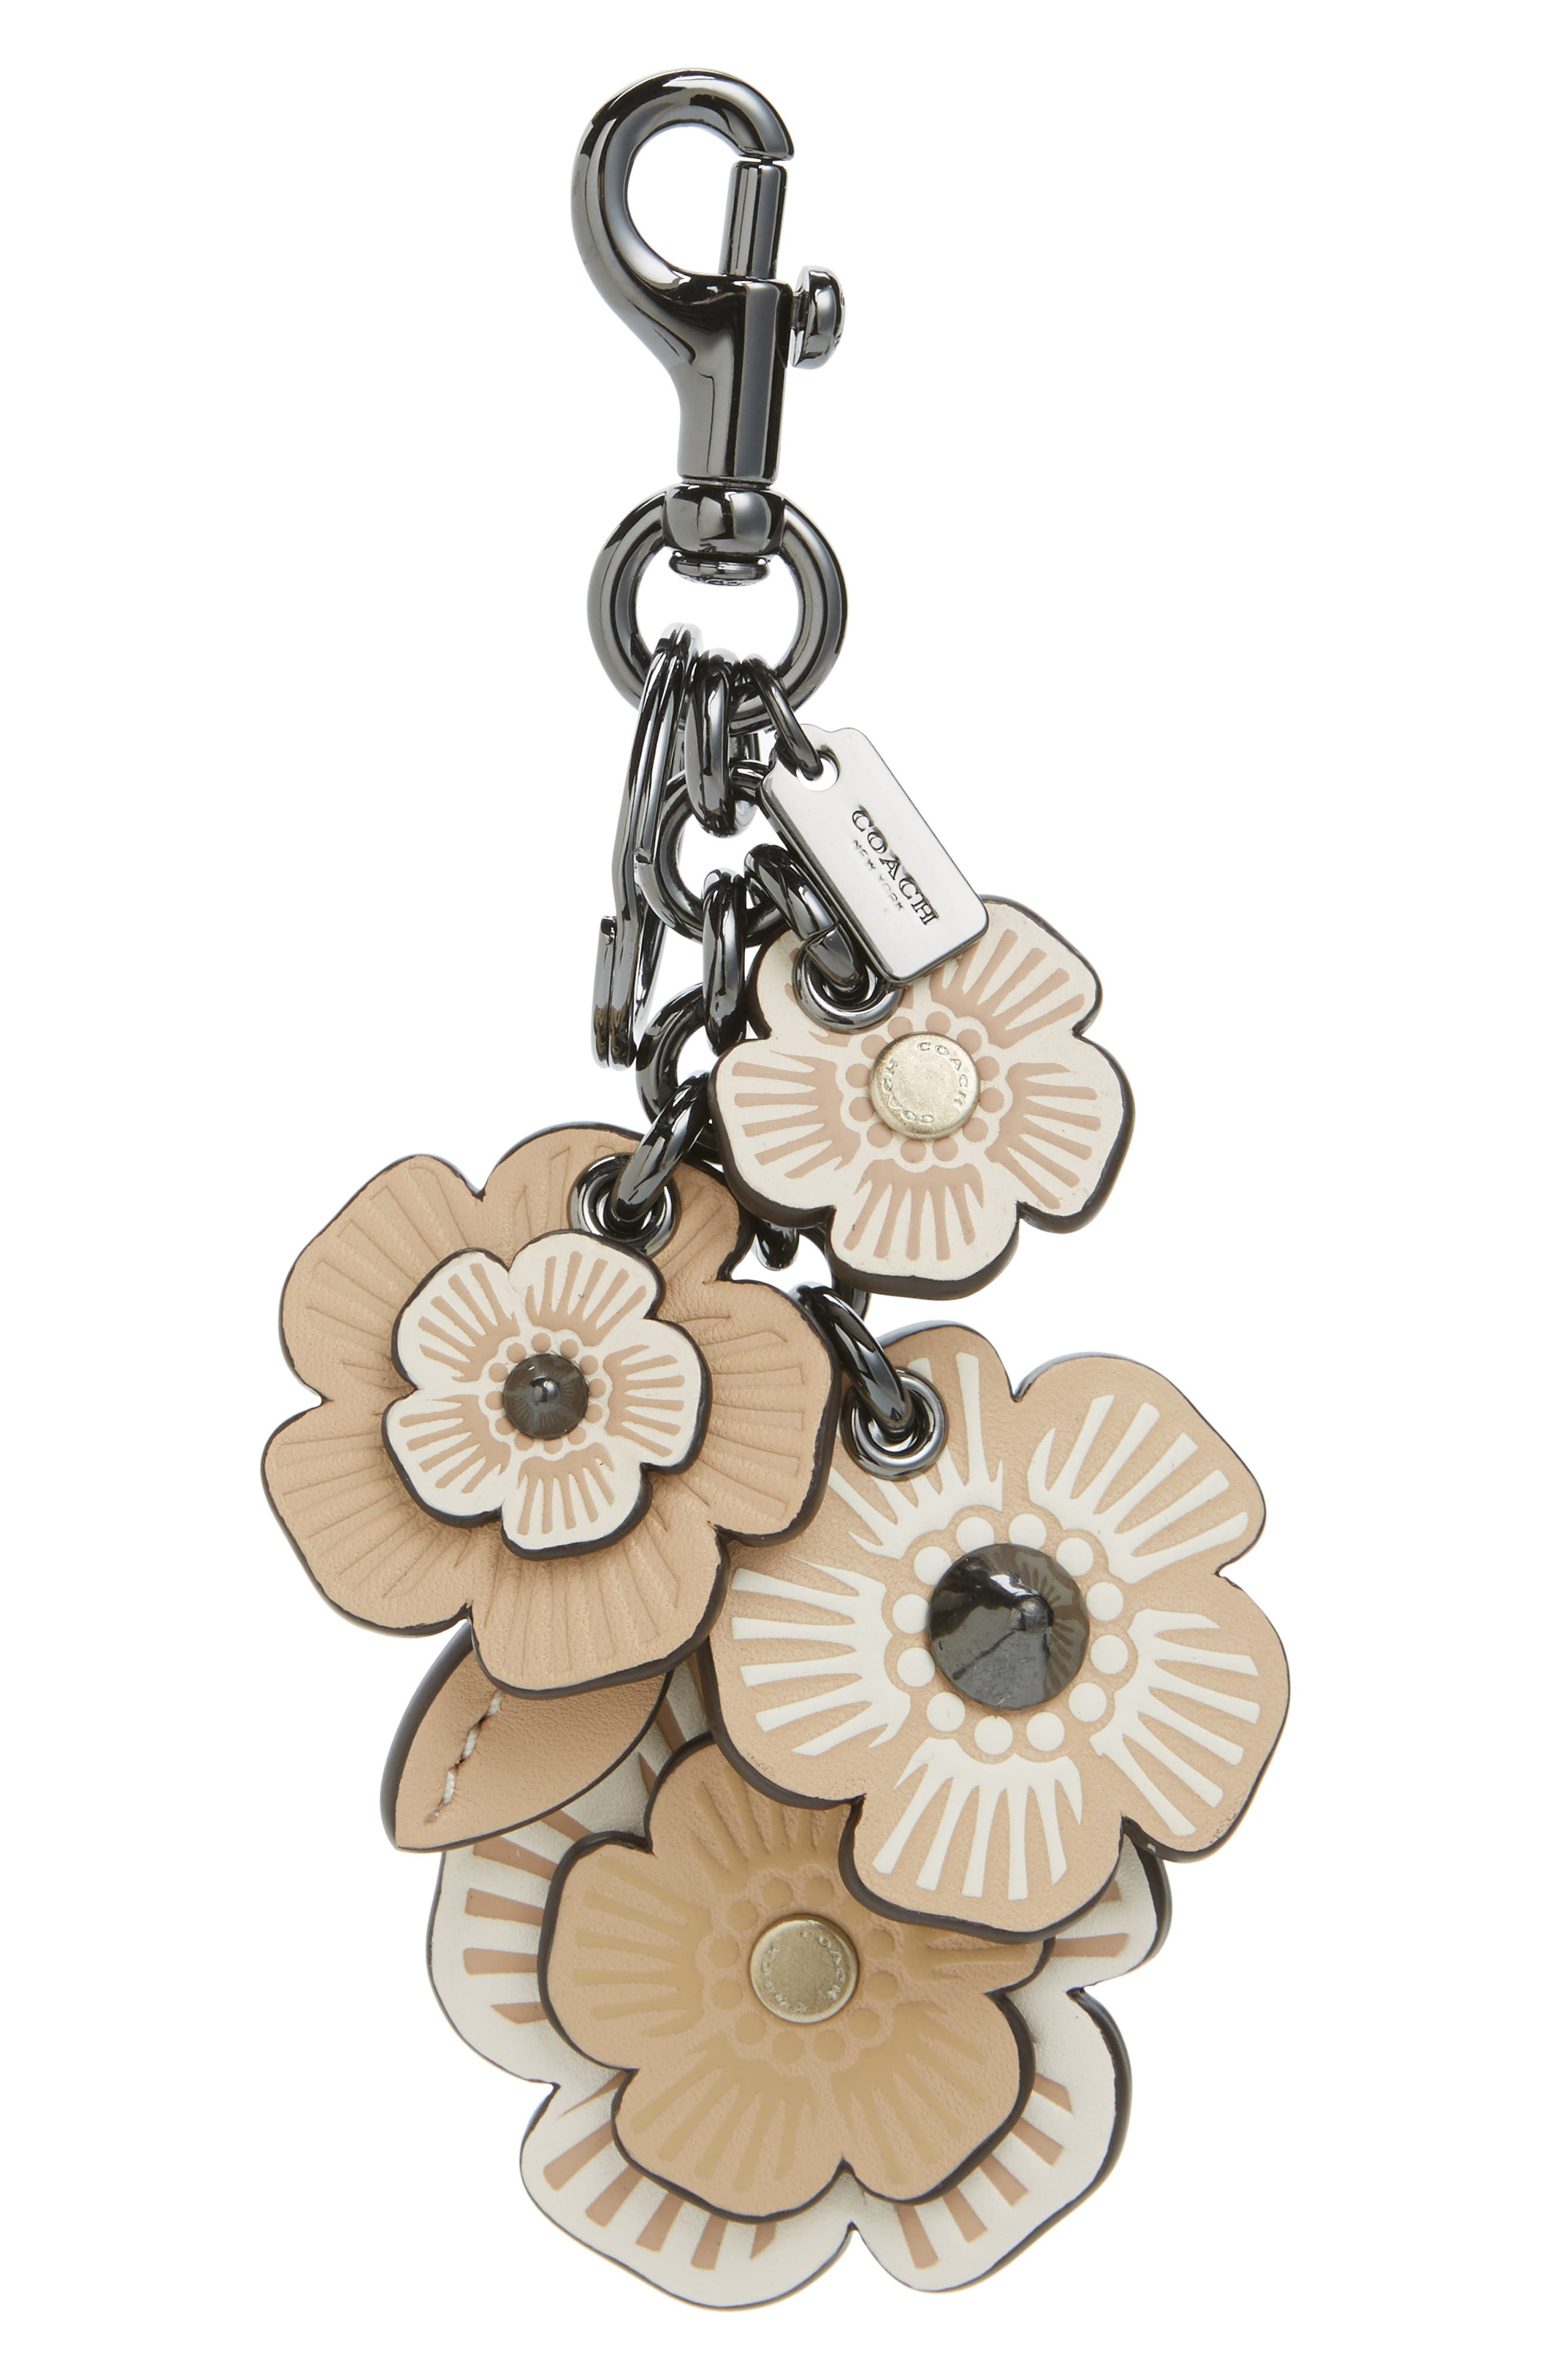 COACH 1941 Willow Floral Mix Bag Charm